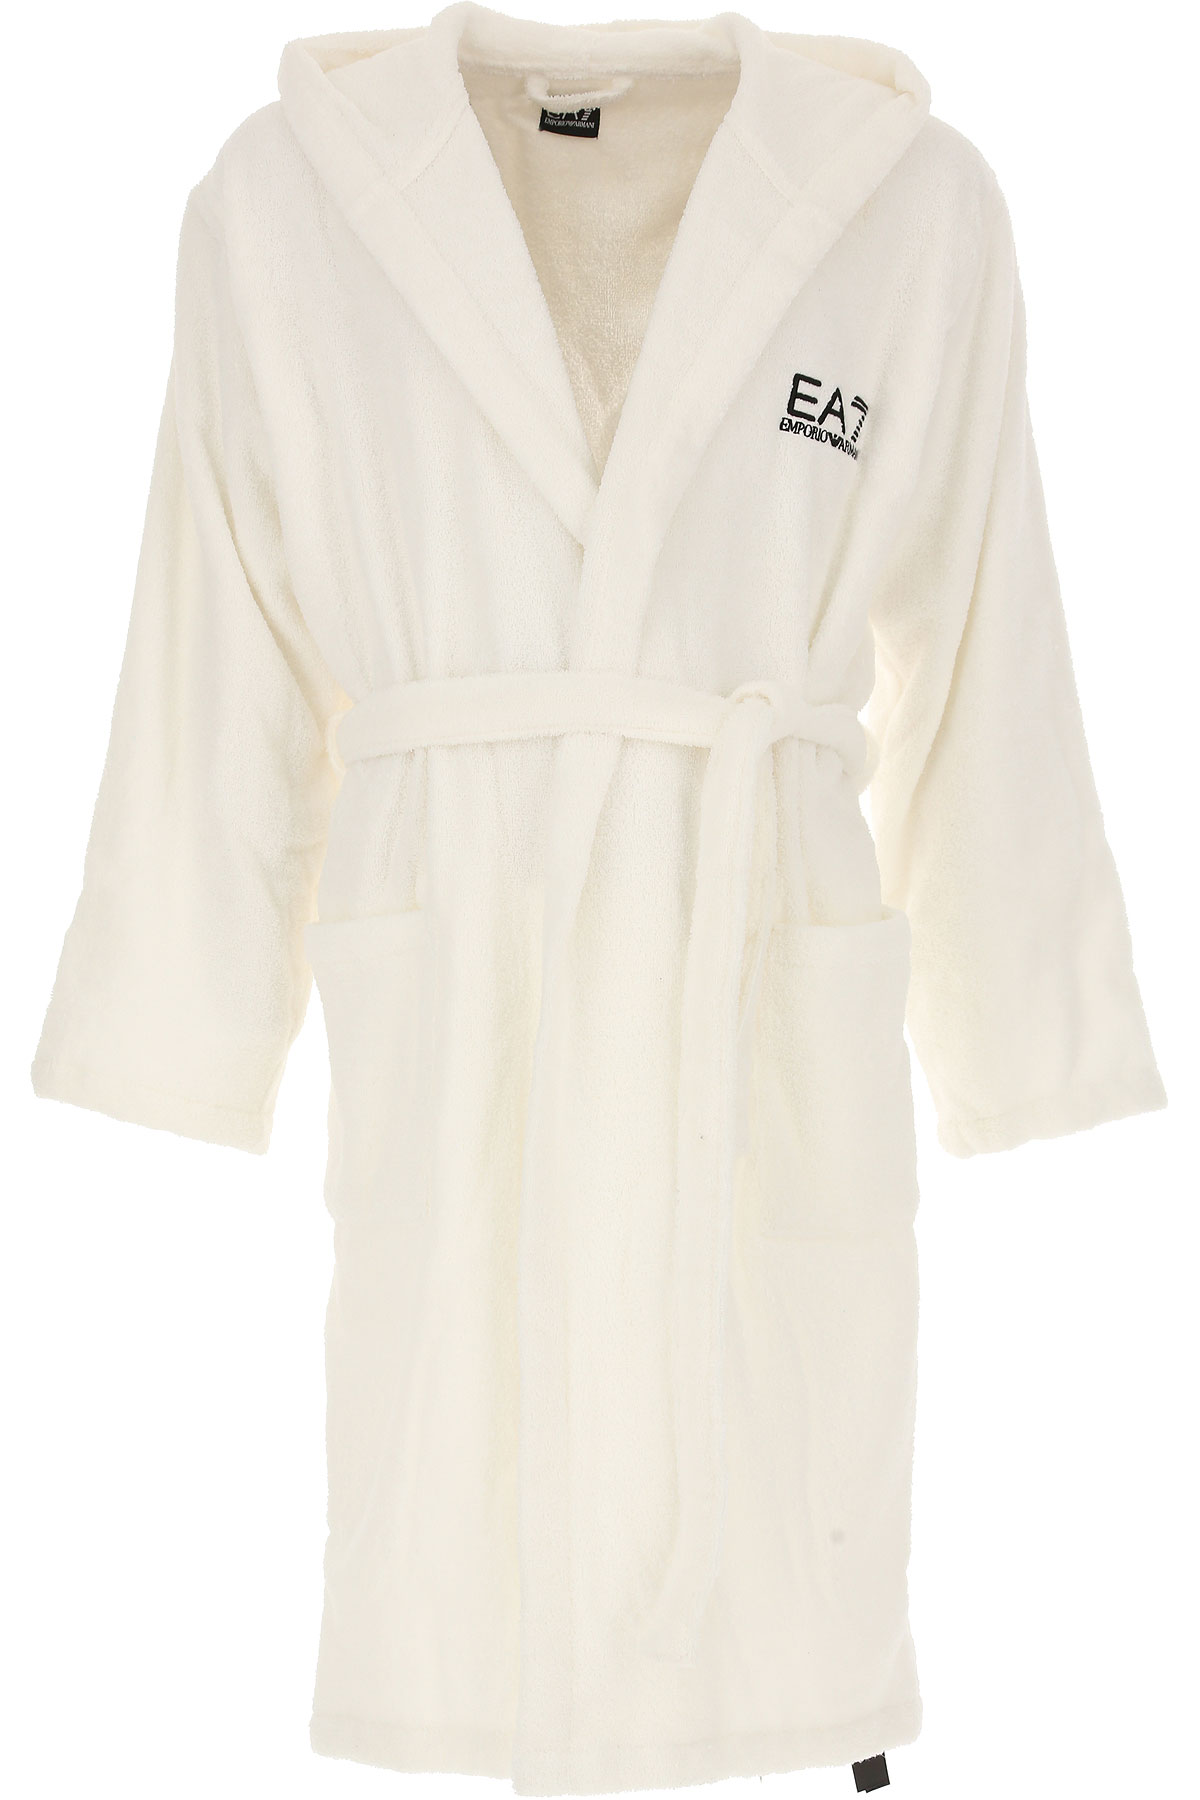 Image of Emporio Armani Mens Swimwear, White, Cotton, 2017, M L XL